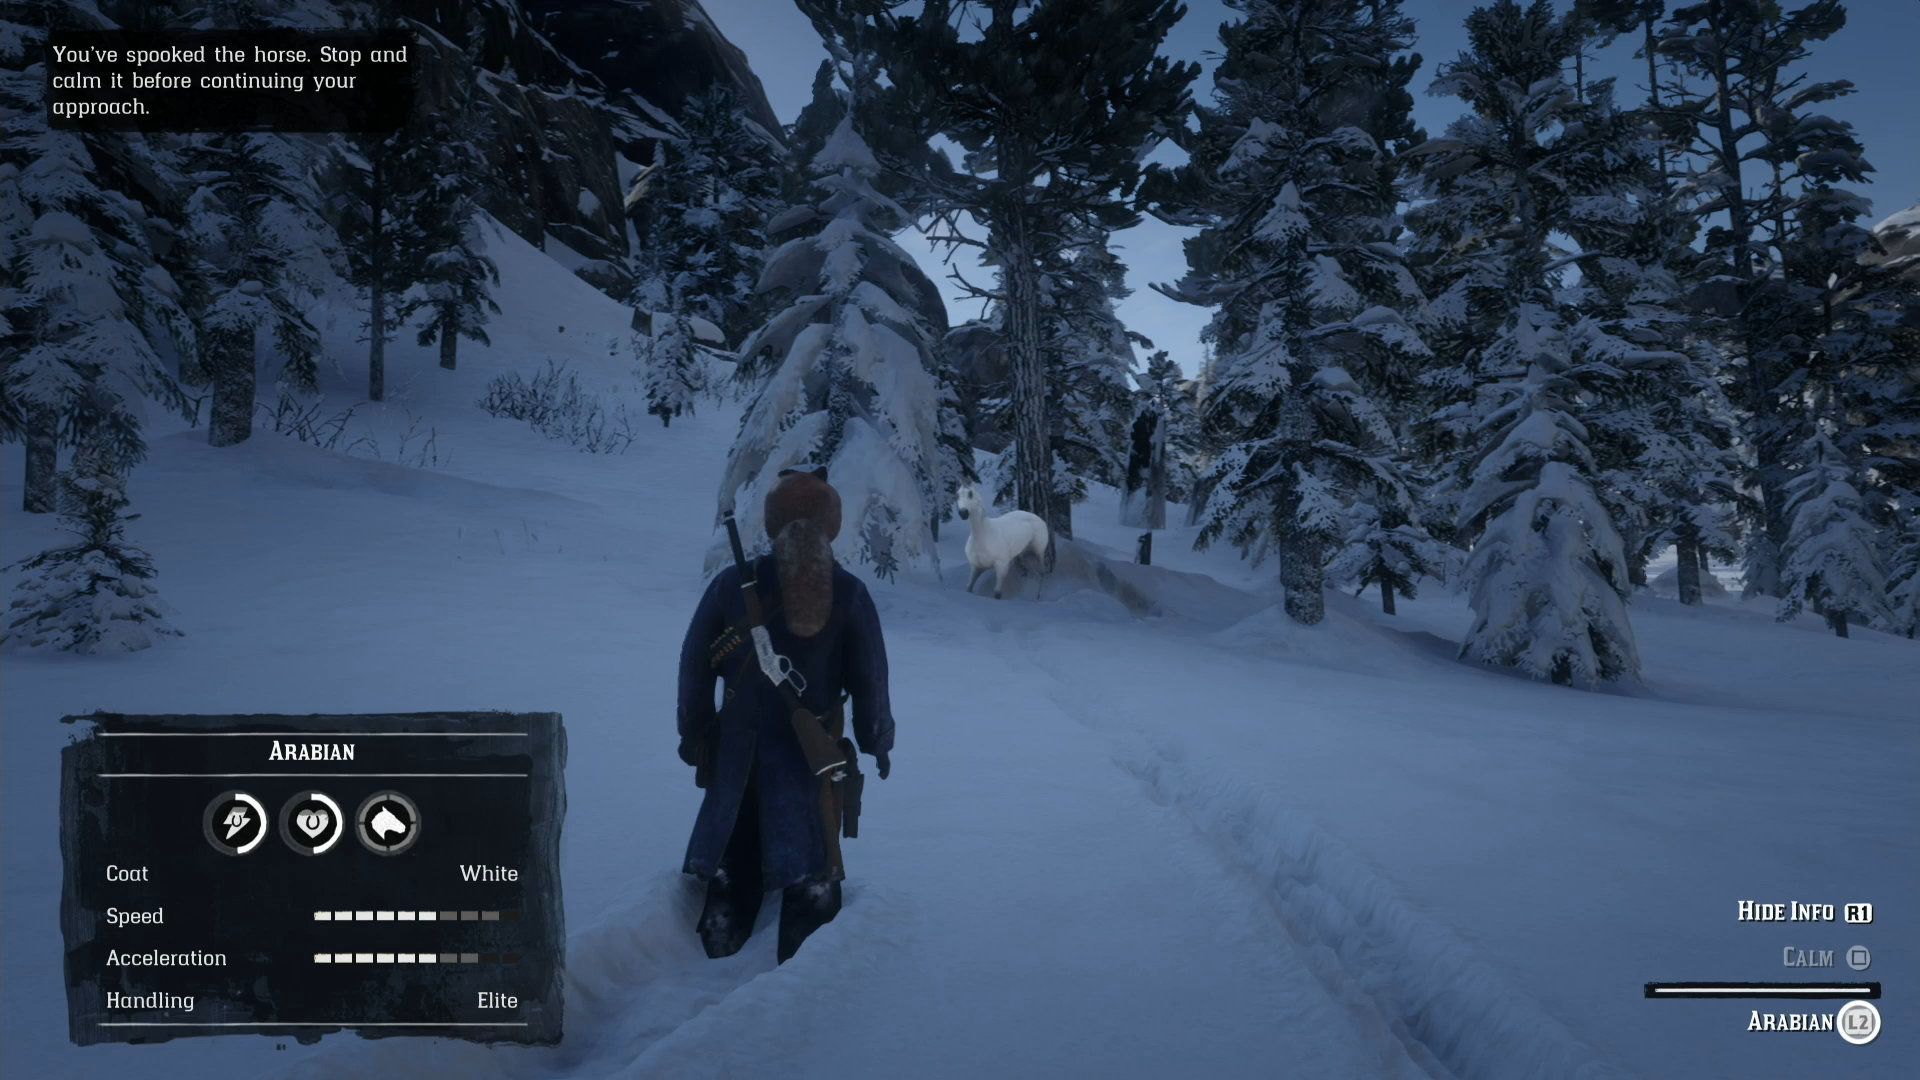 How to Find the White Arabian Horse in Red Dead Redemption 2